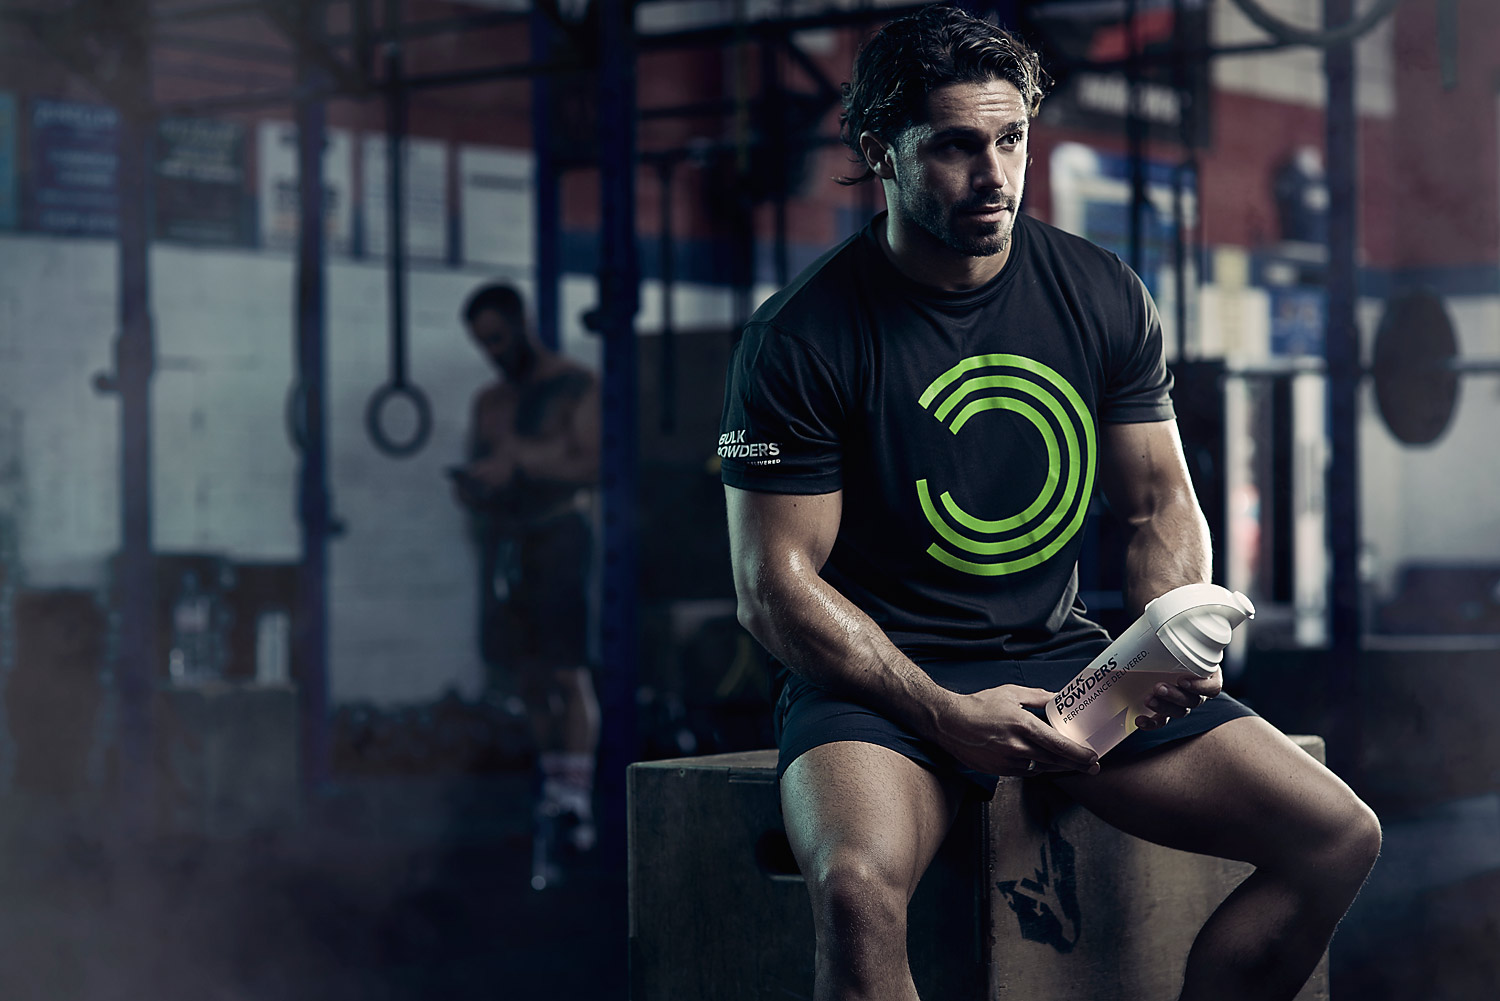 Recovering in a crossfit gym